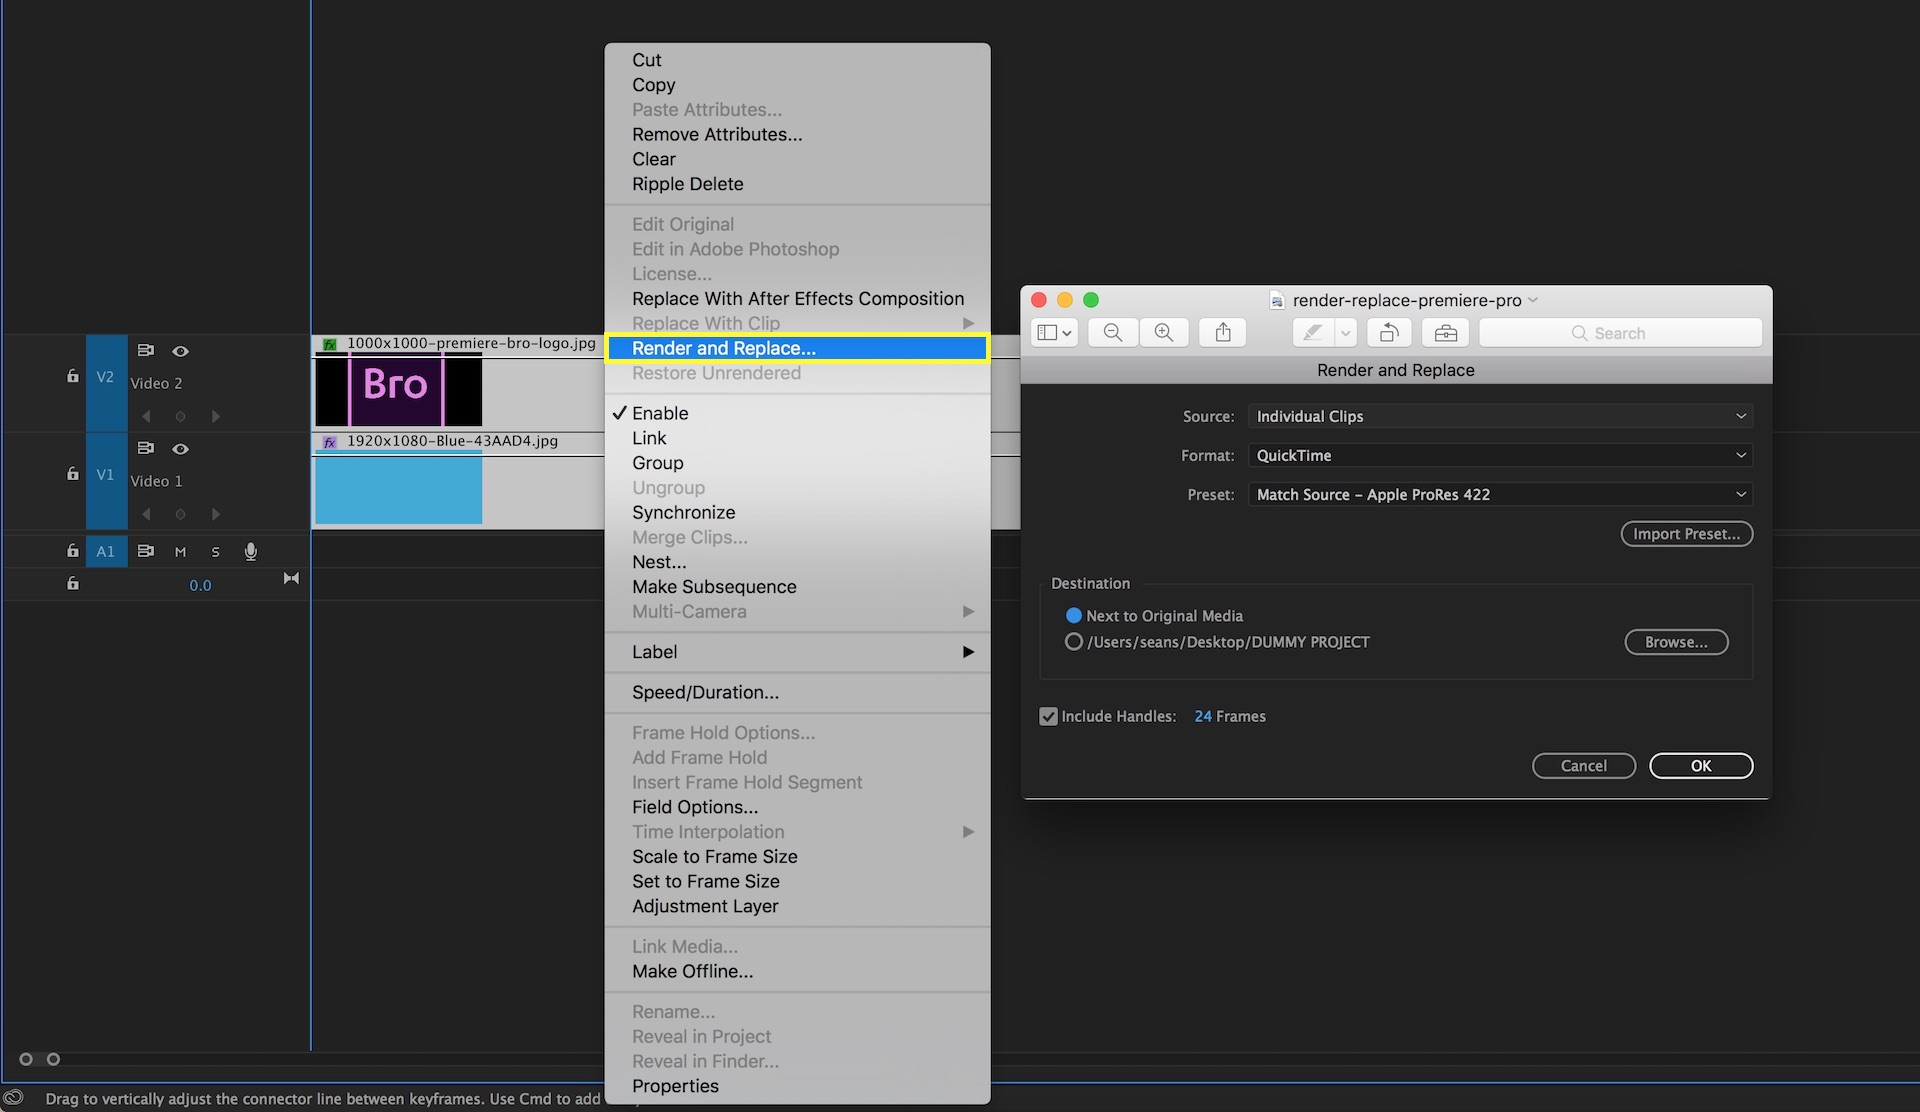 Render and Replace clips and Dynamically Linked comps for better playback